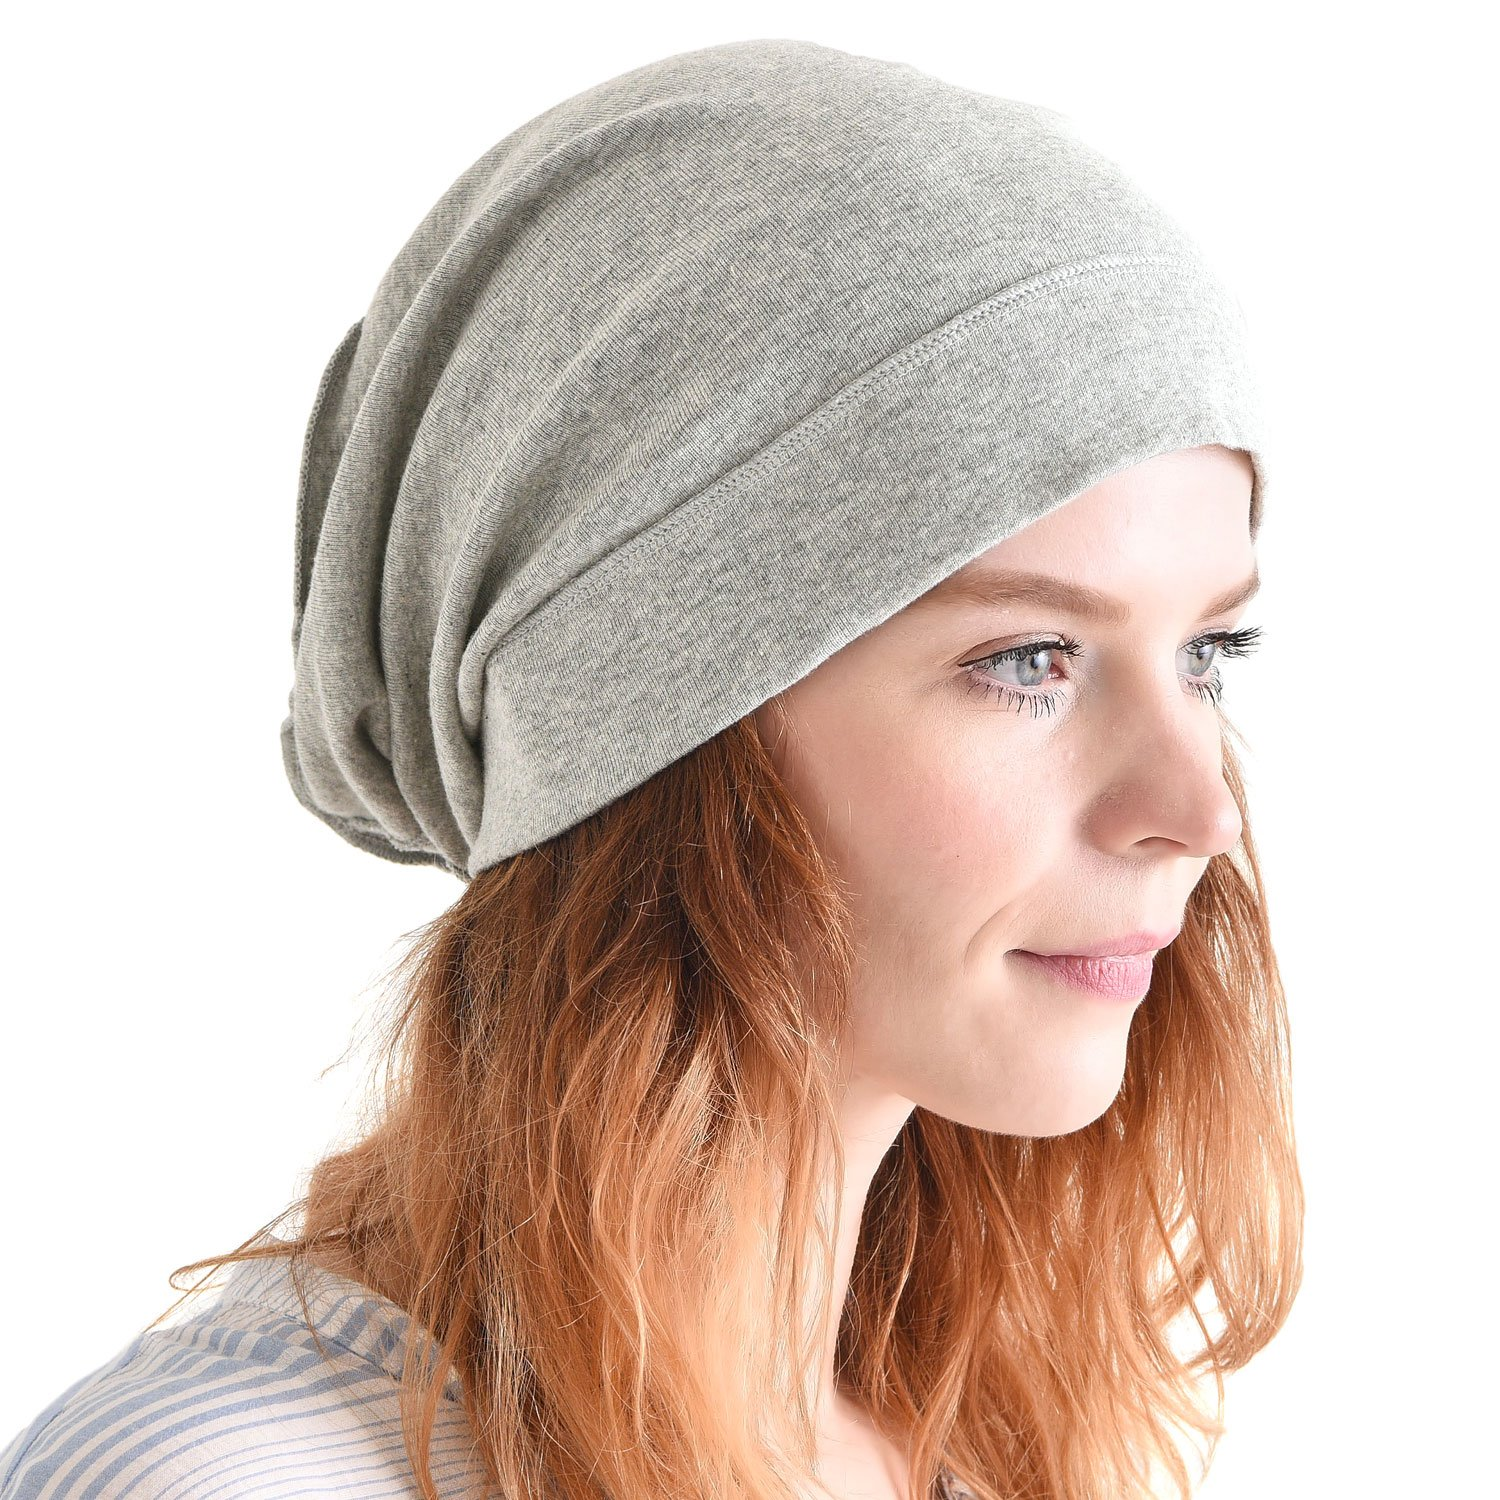 CHARM Mens Slouch Beanie Hat - Womens Organic Cotton Hipster Chemo Knit Casualbox